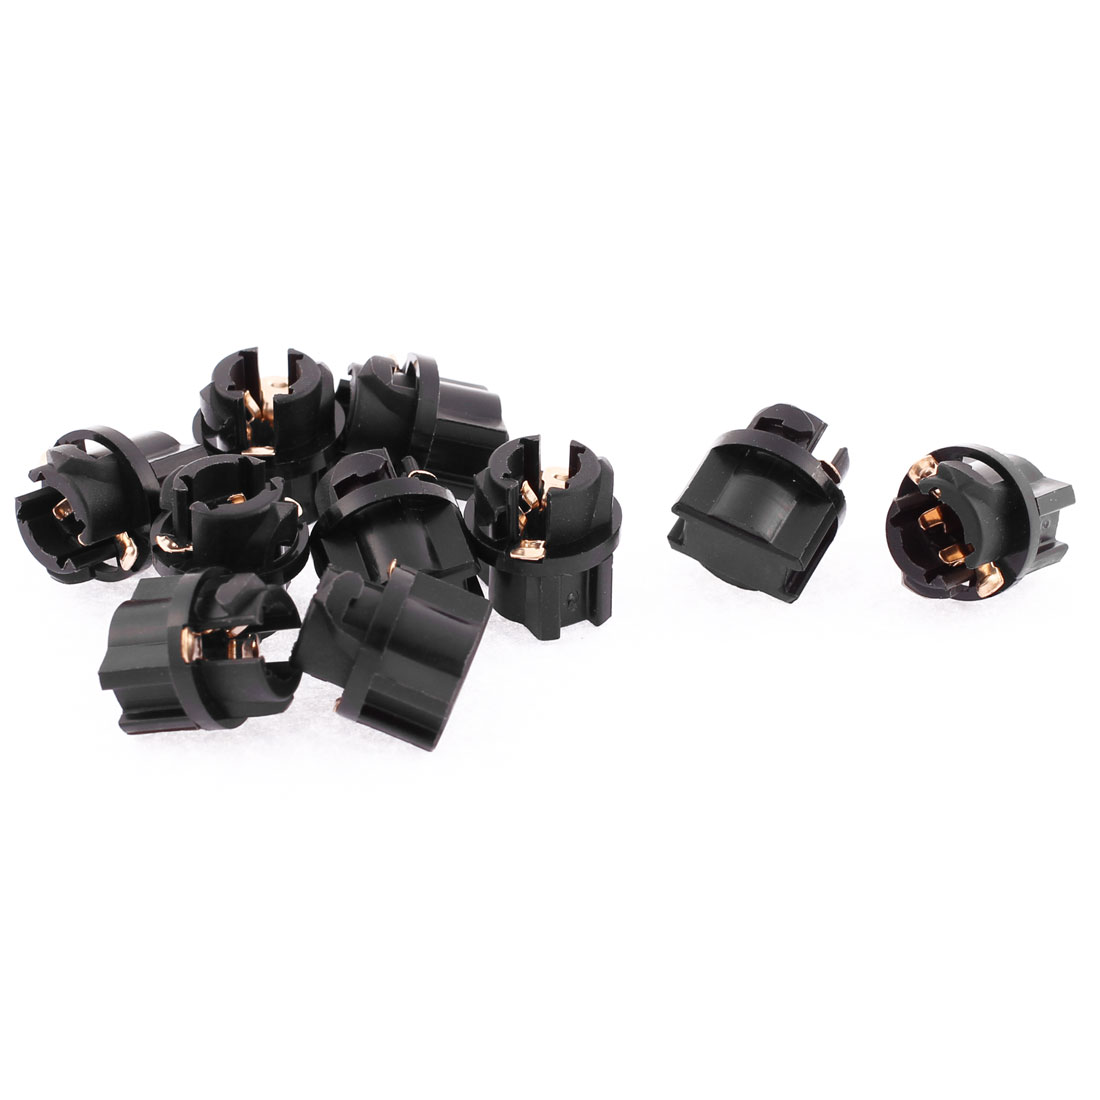 10 Pcs T5 Dashboard Gauge Light Lamp Bulb Socket Holder Black for Automobile